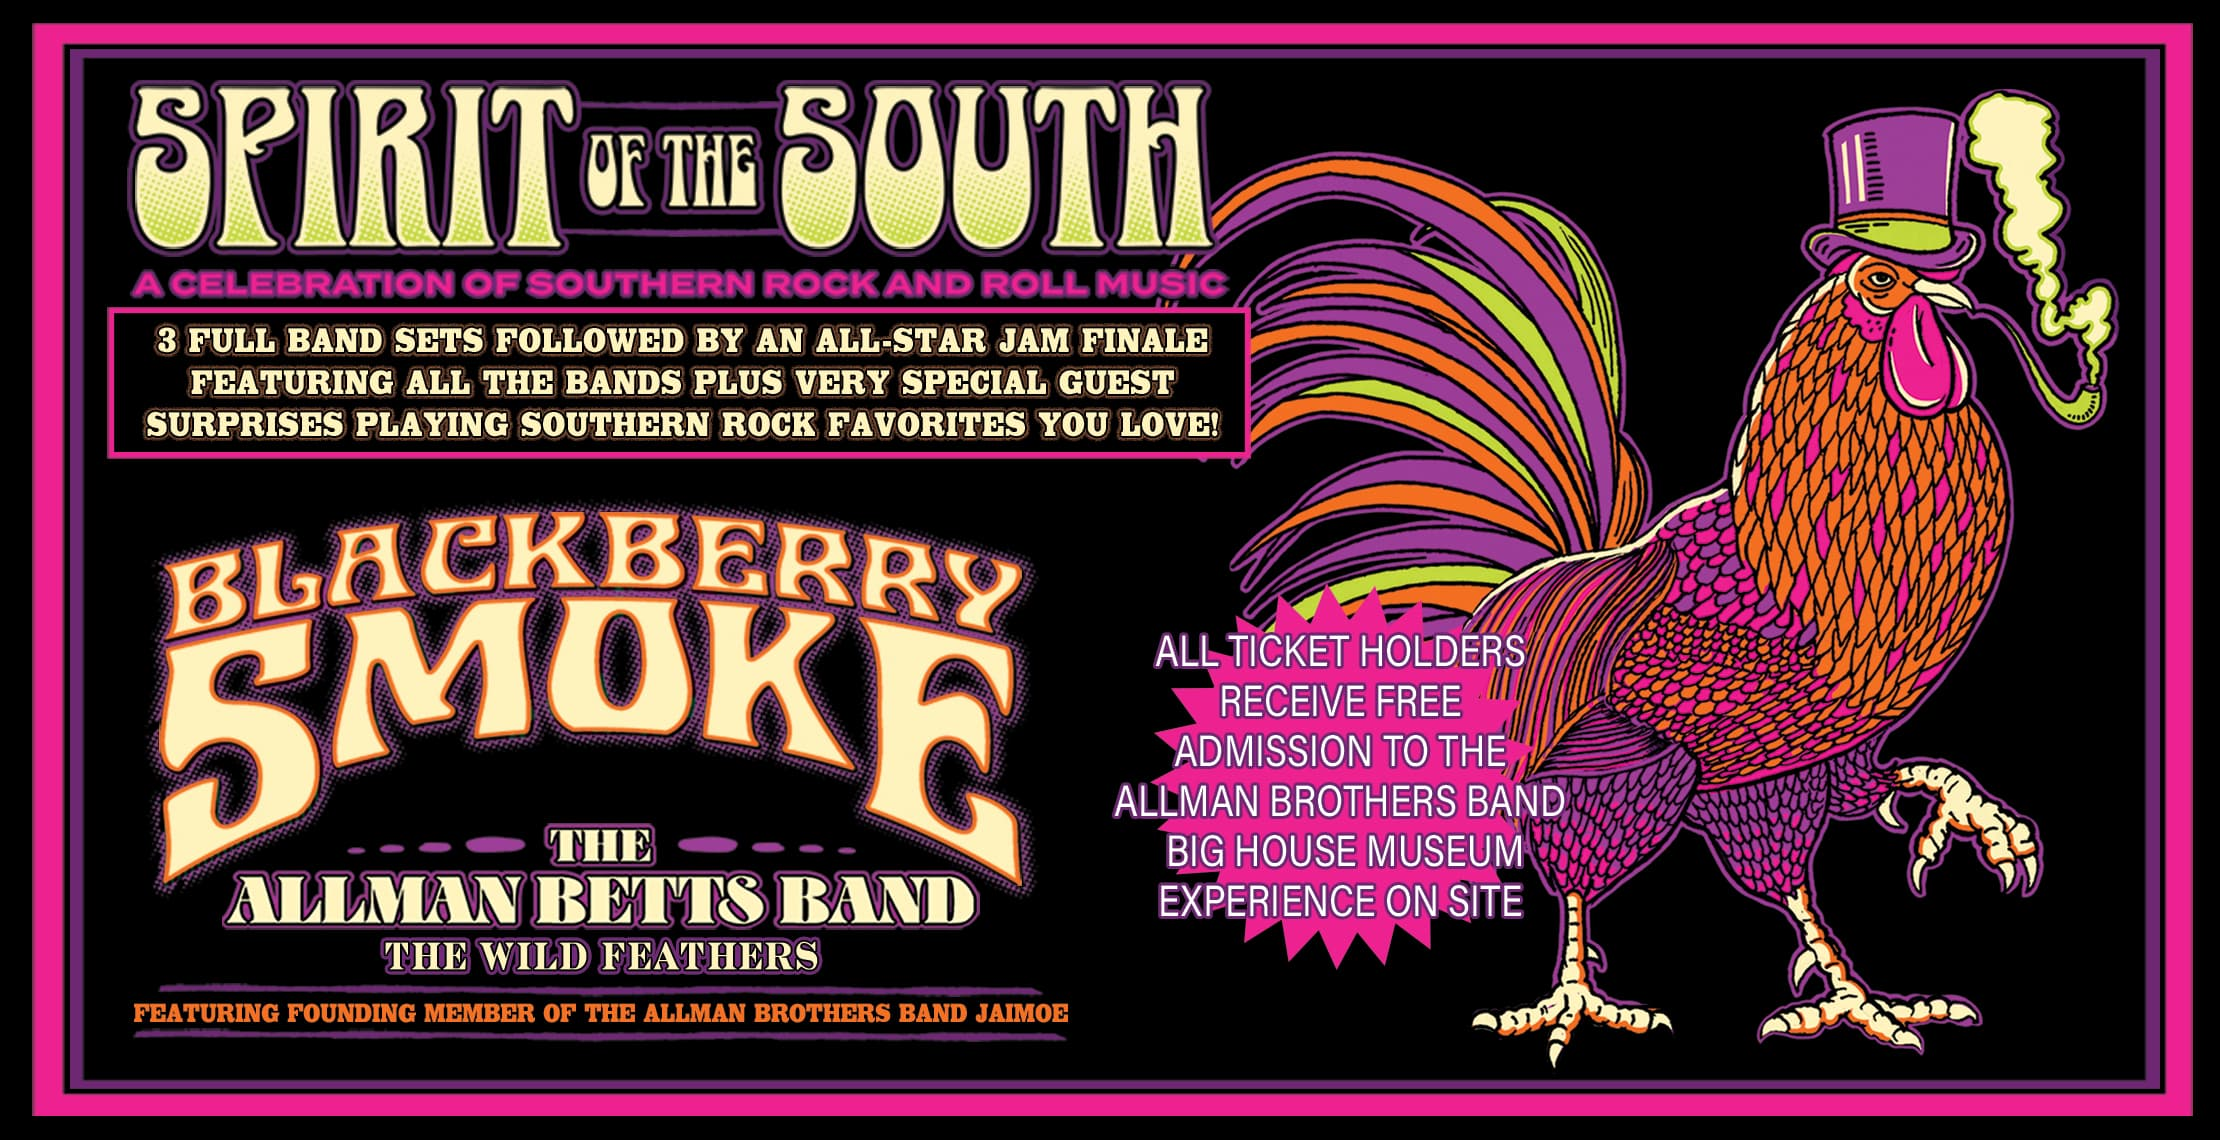 RESCHEDULED - Blackberry Smoke, The Allman Betts Band, The Wild Feathers and more